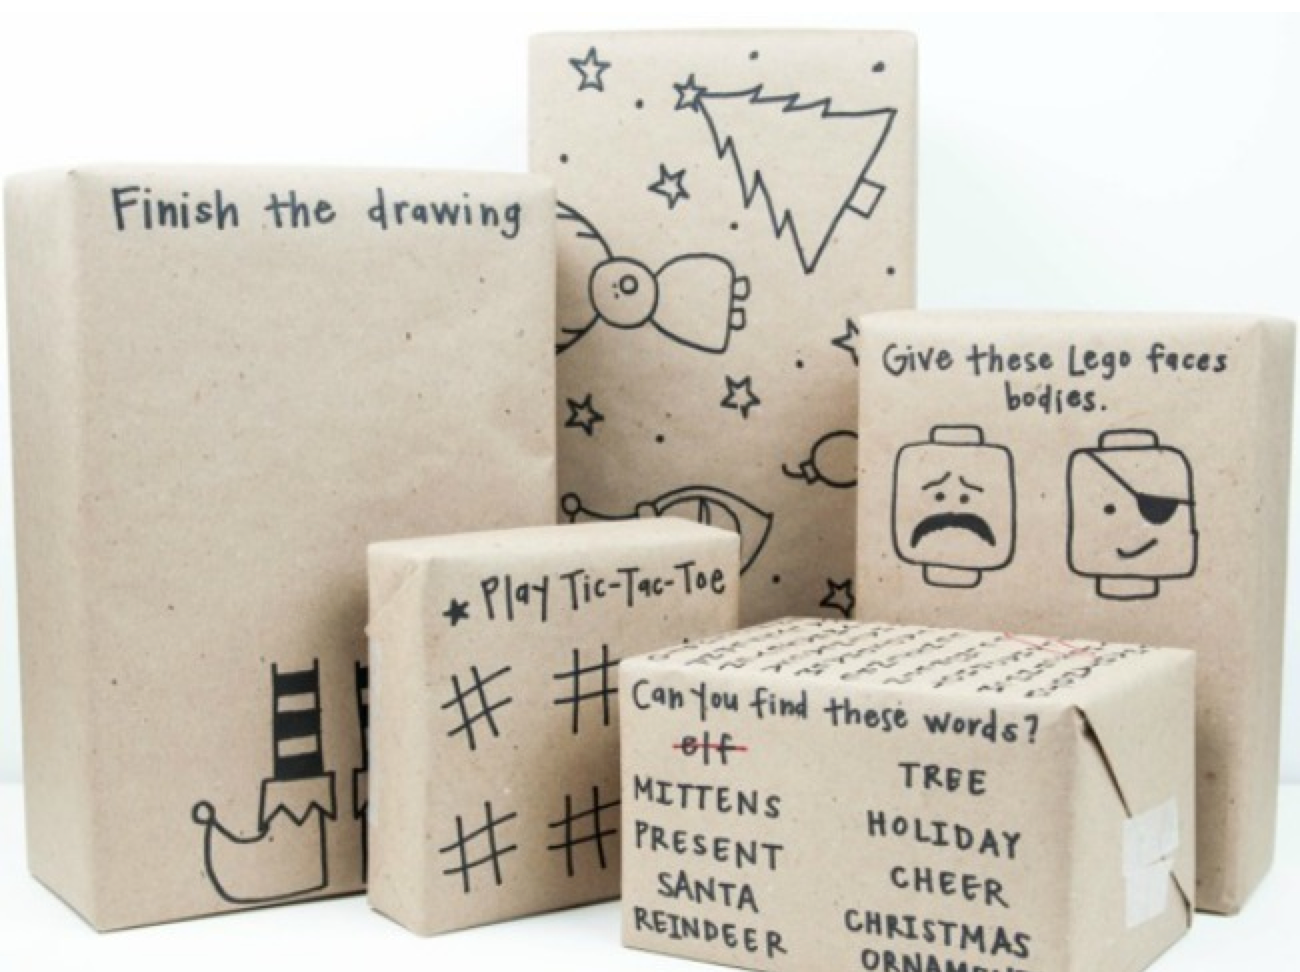 We love,love, love the idea of incorporating DIY activities on your kids wrapping paper! It's the perfect way to make them one-of-kind and entertain the little ones. All you need is some kraft paper, a sharpie, and imagination!  Image Source